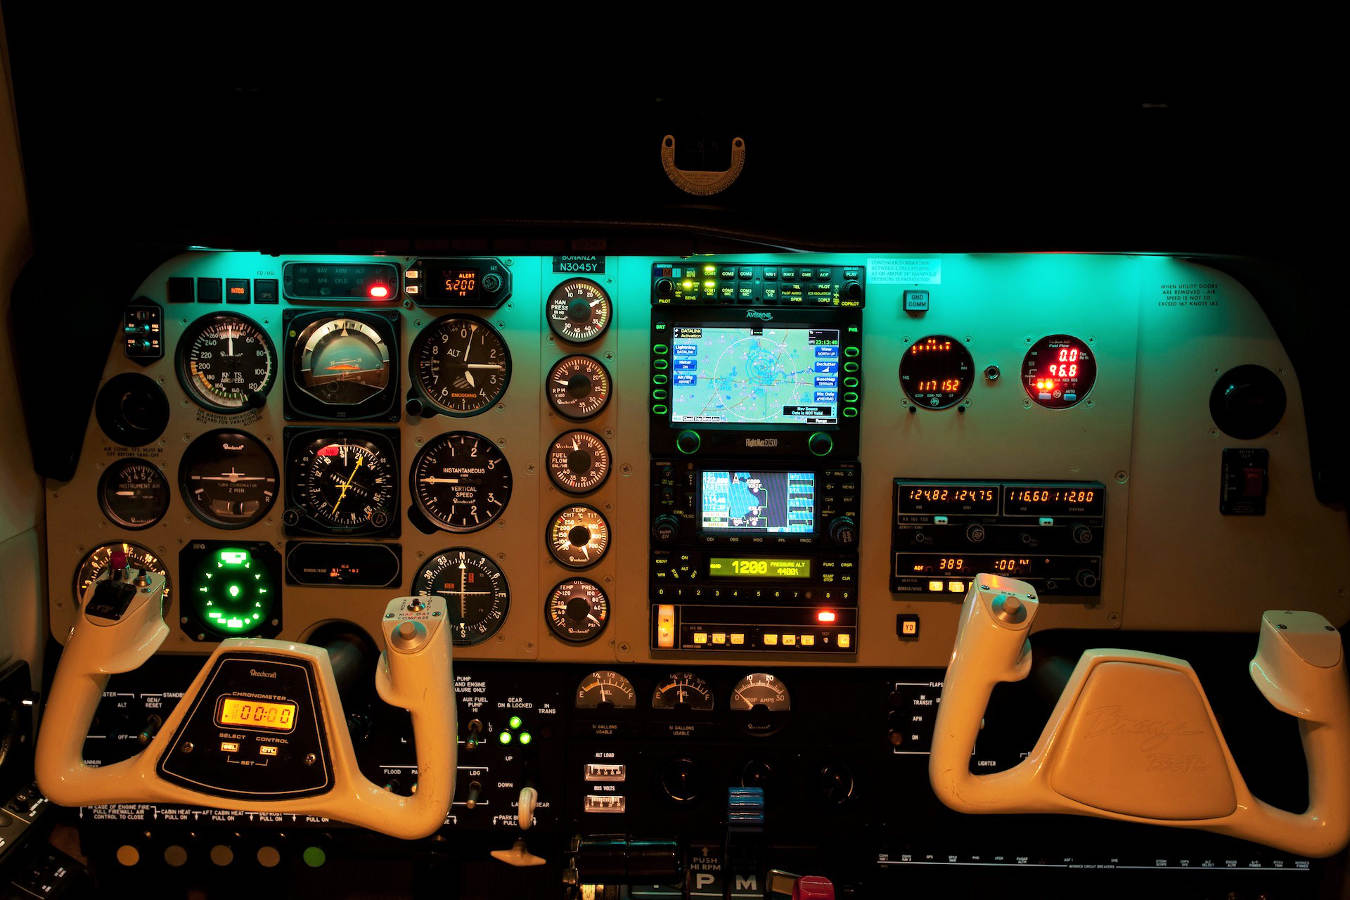 The instrument panel of a Beechcraft A36 Bonanza at night, ready for instrument flying.